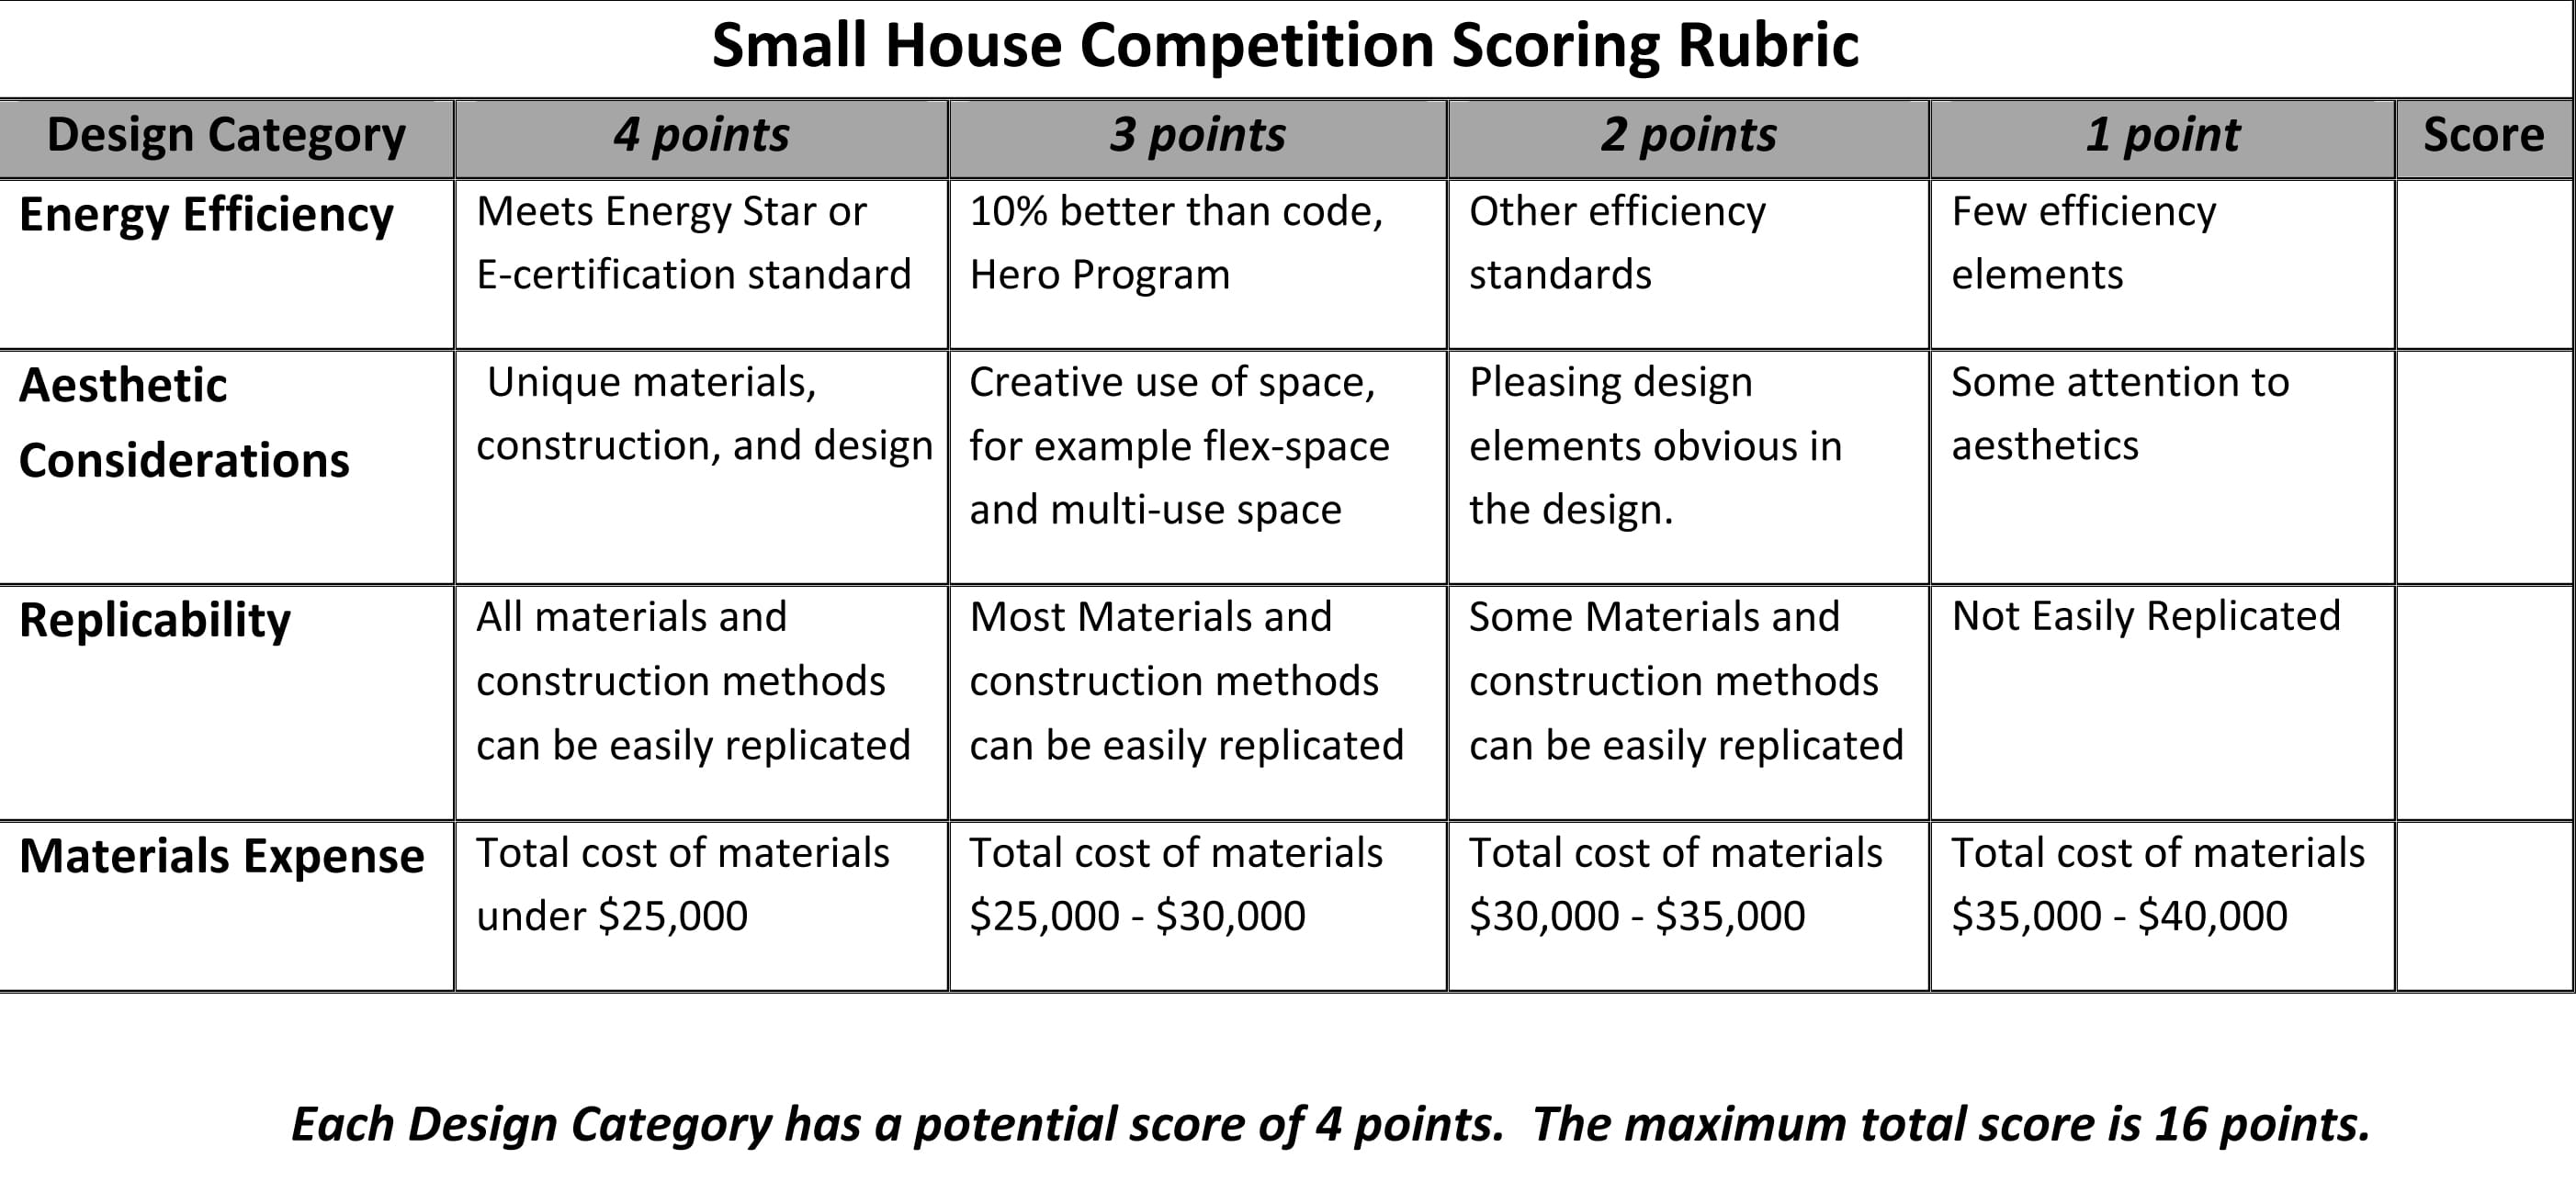 Microsoft Word - Revised Small House Scoring Rubric.docx